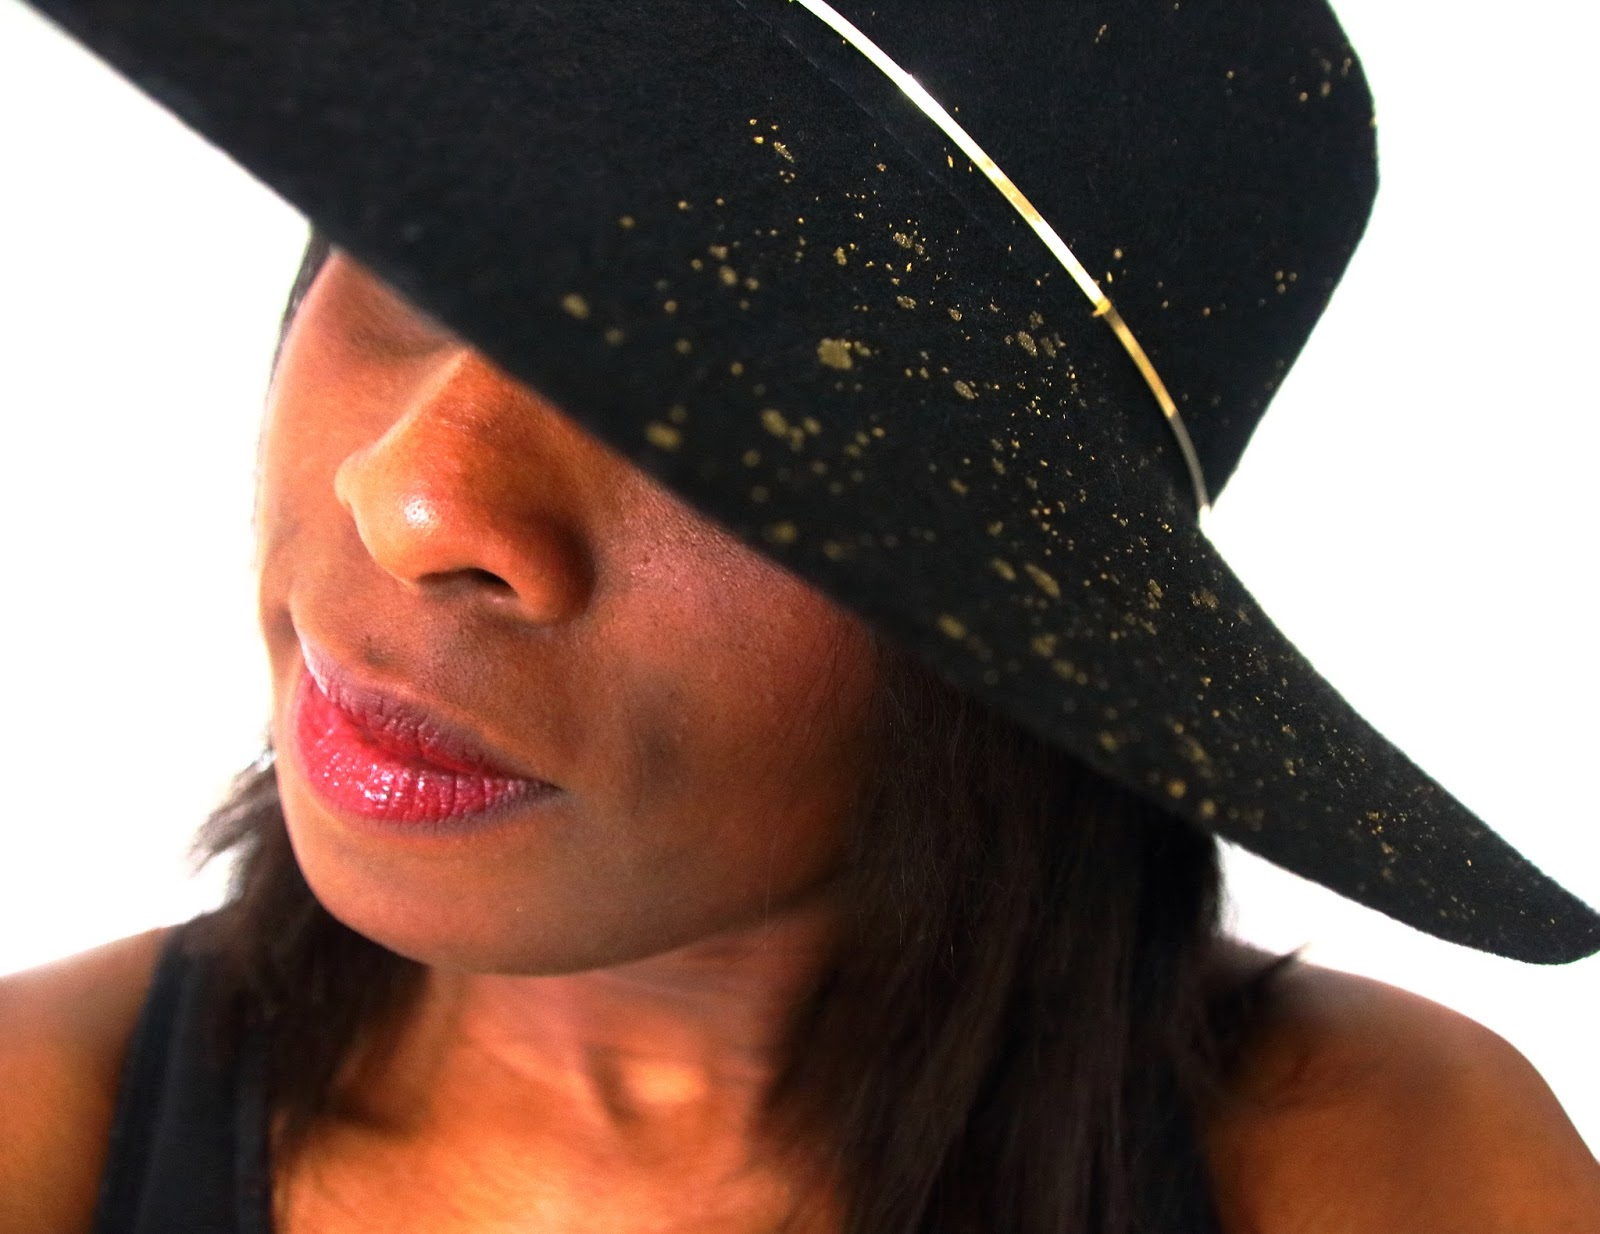 Designedlifeblog.blogspot.com Splatter hat